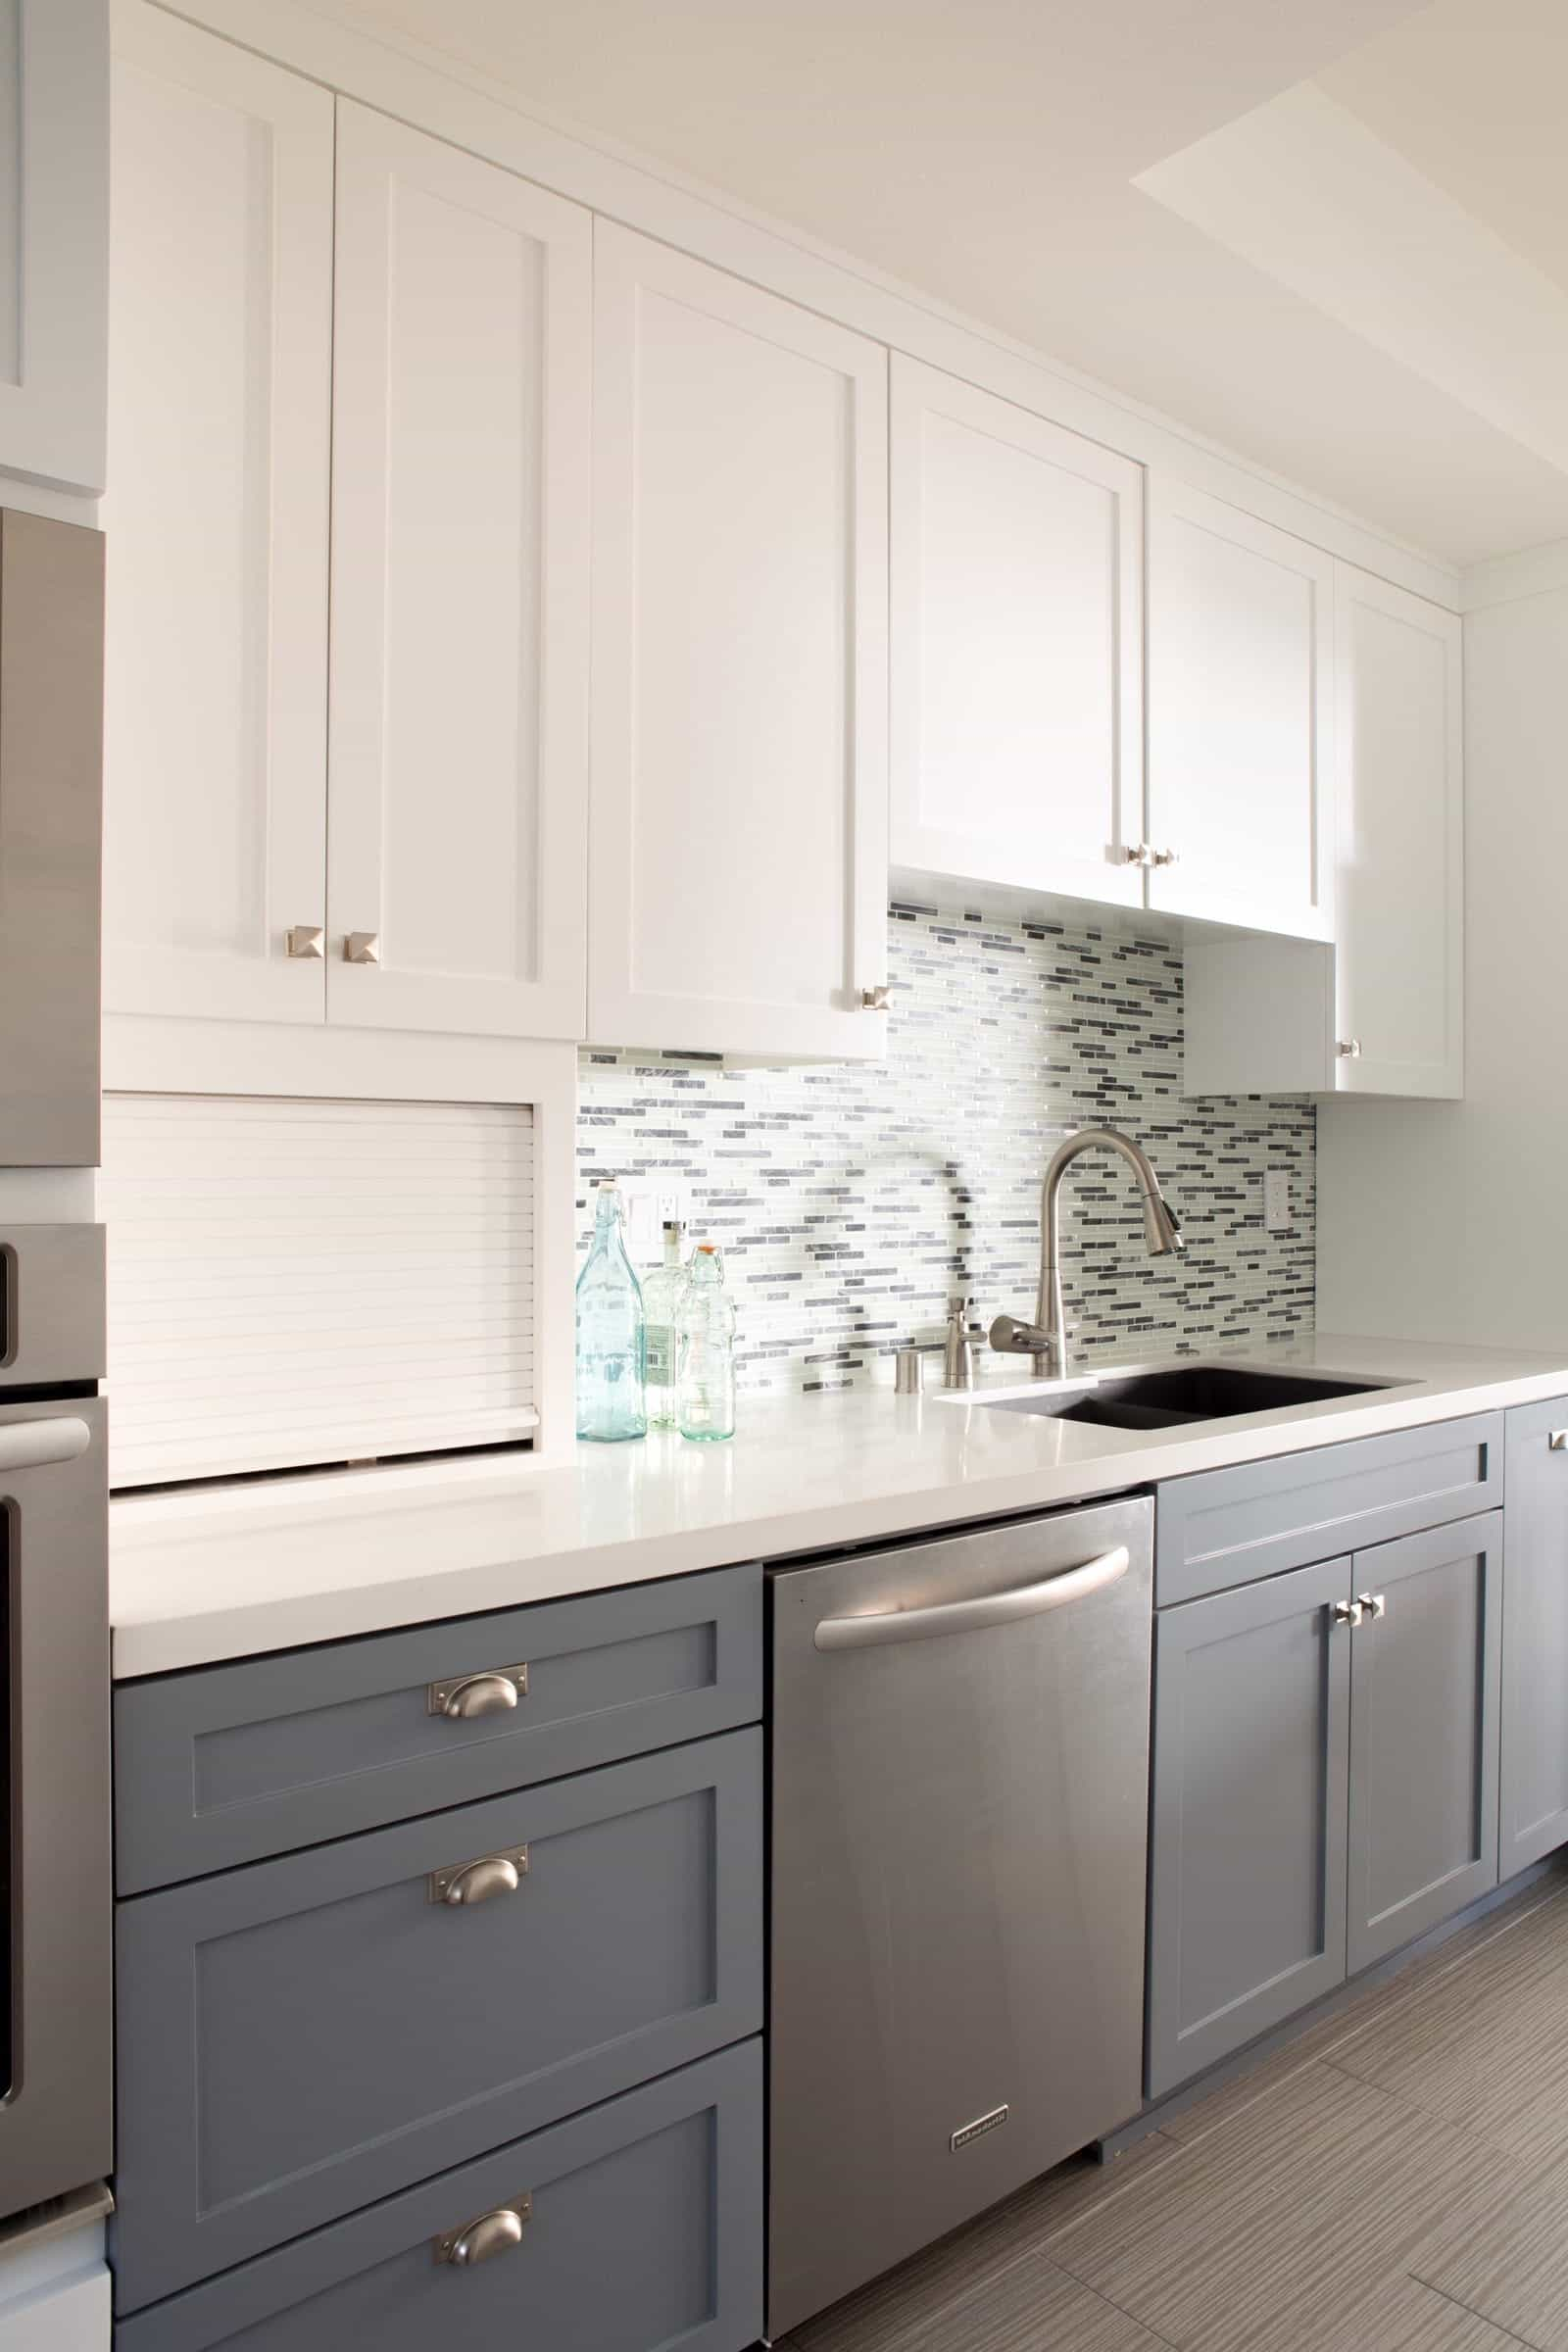 Elegance White Two Toned Kitchen Cabinets With Mosaic Tile Backsplash (View 26 of 26)